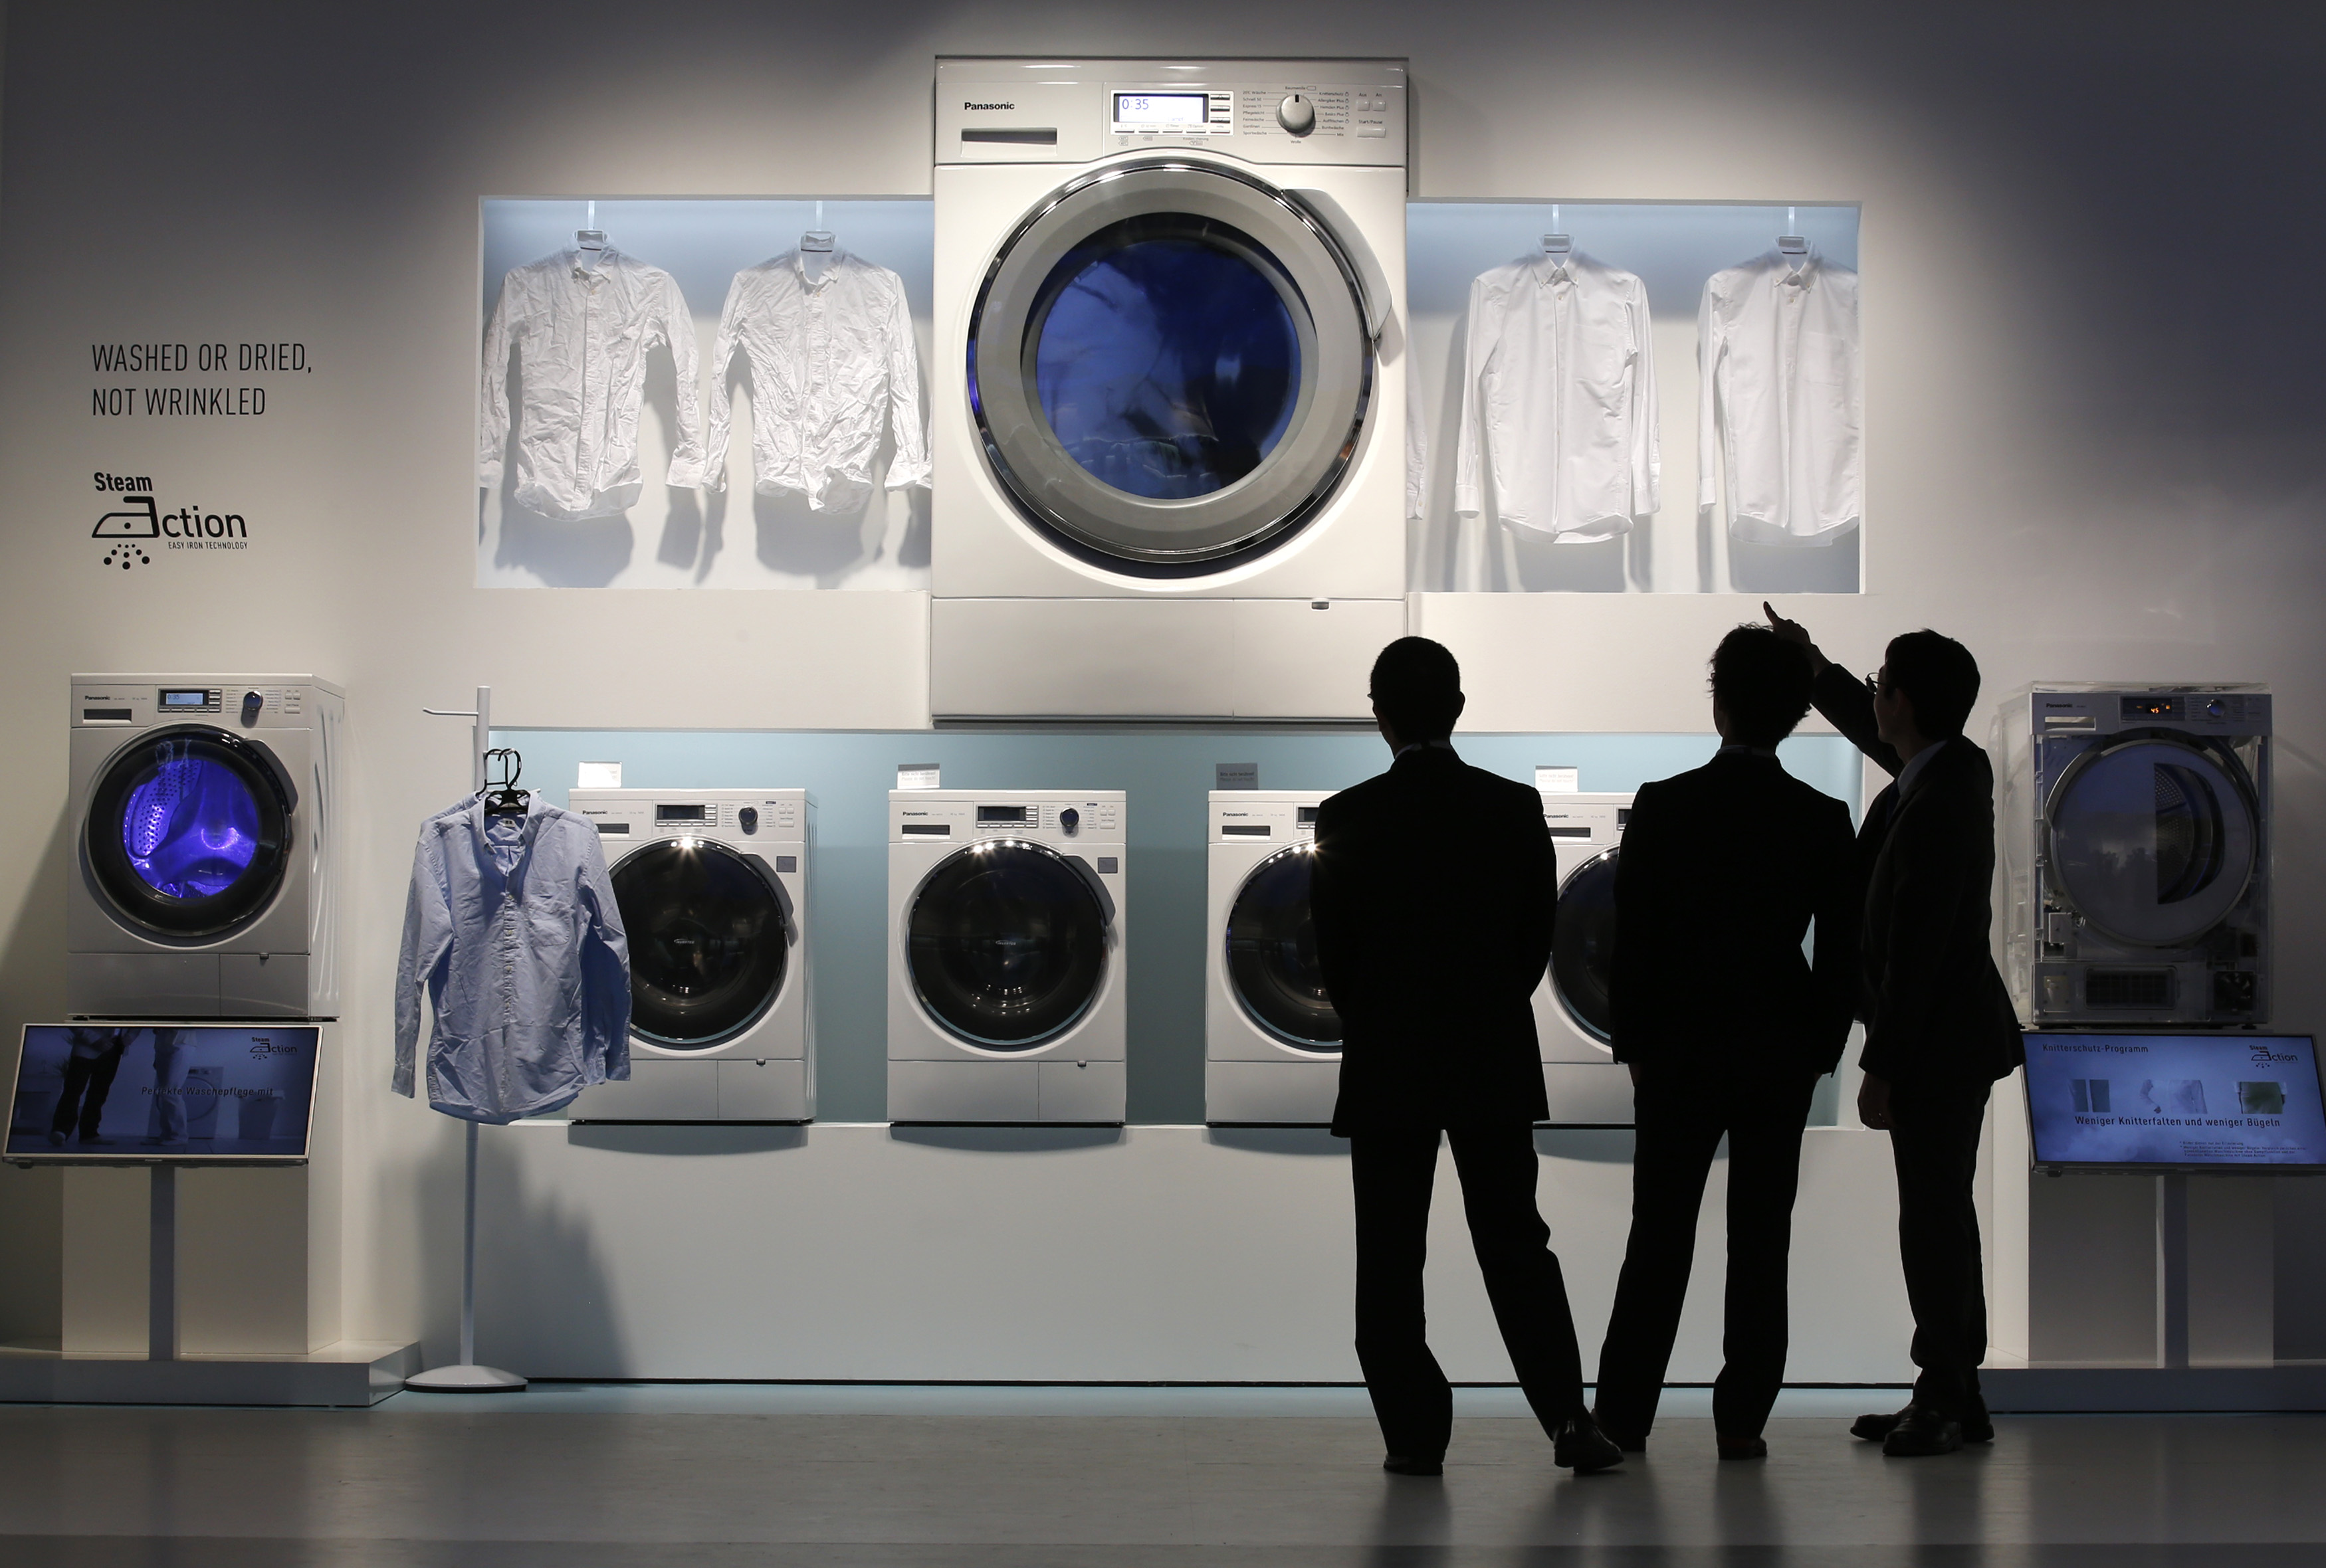 People look at a washing machine during a media preview at the Panasonic booth at the IFA consumer electronics fair in Berlin, September 4, 2013. The IFA consumer electronics and home appliances fair will open its doors to the public from September 6 till 11 in the German capital. REUTERS/Fabrizio Bensch (GERMANY - Tags: SCIENCE TECHNOLOGY TPX IMAGES OF THE DAY) - BM2E9941BCY01